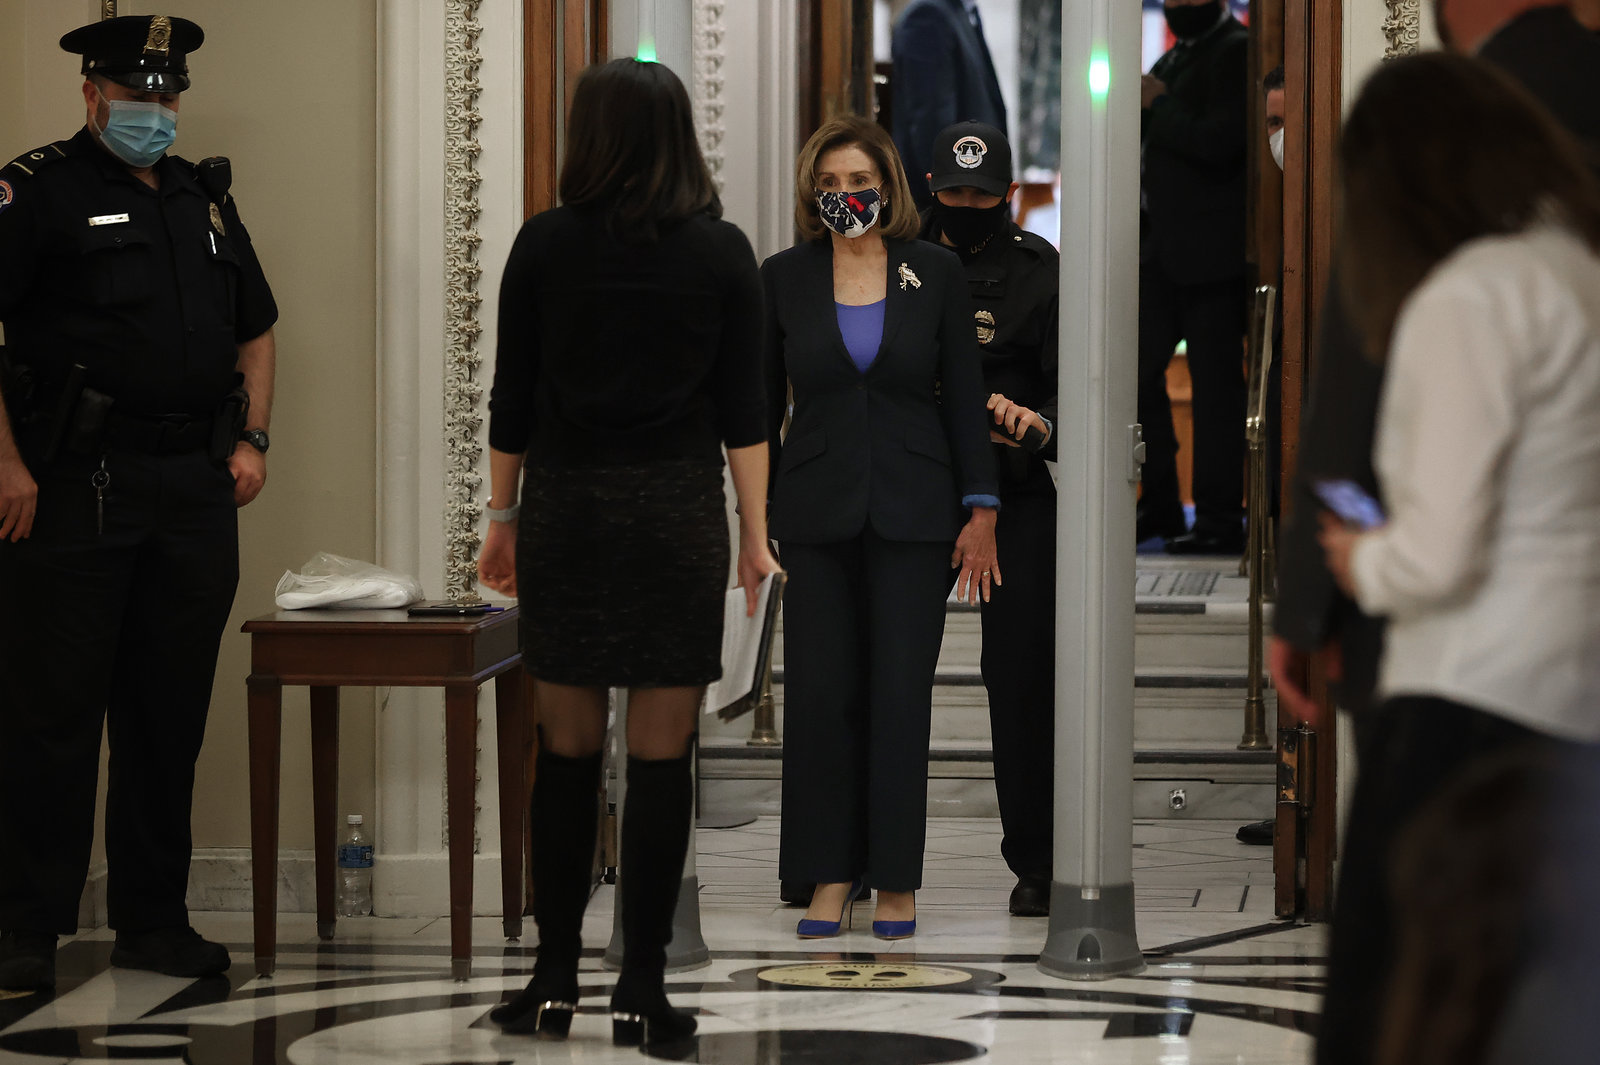 Speaker of the House Nancy Pelosi, D-Calif., is screened at a metal detector at the doors of the House of Representatives Chamber